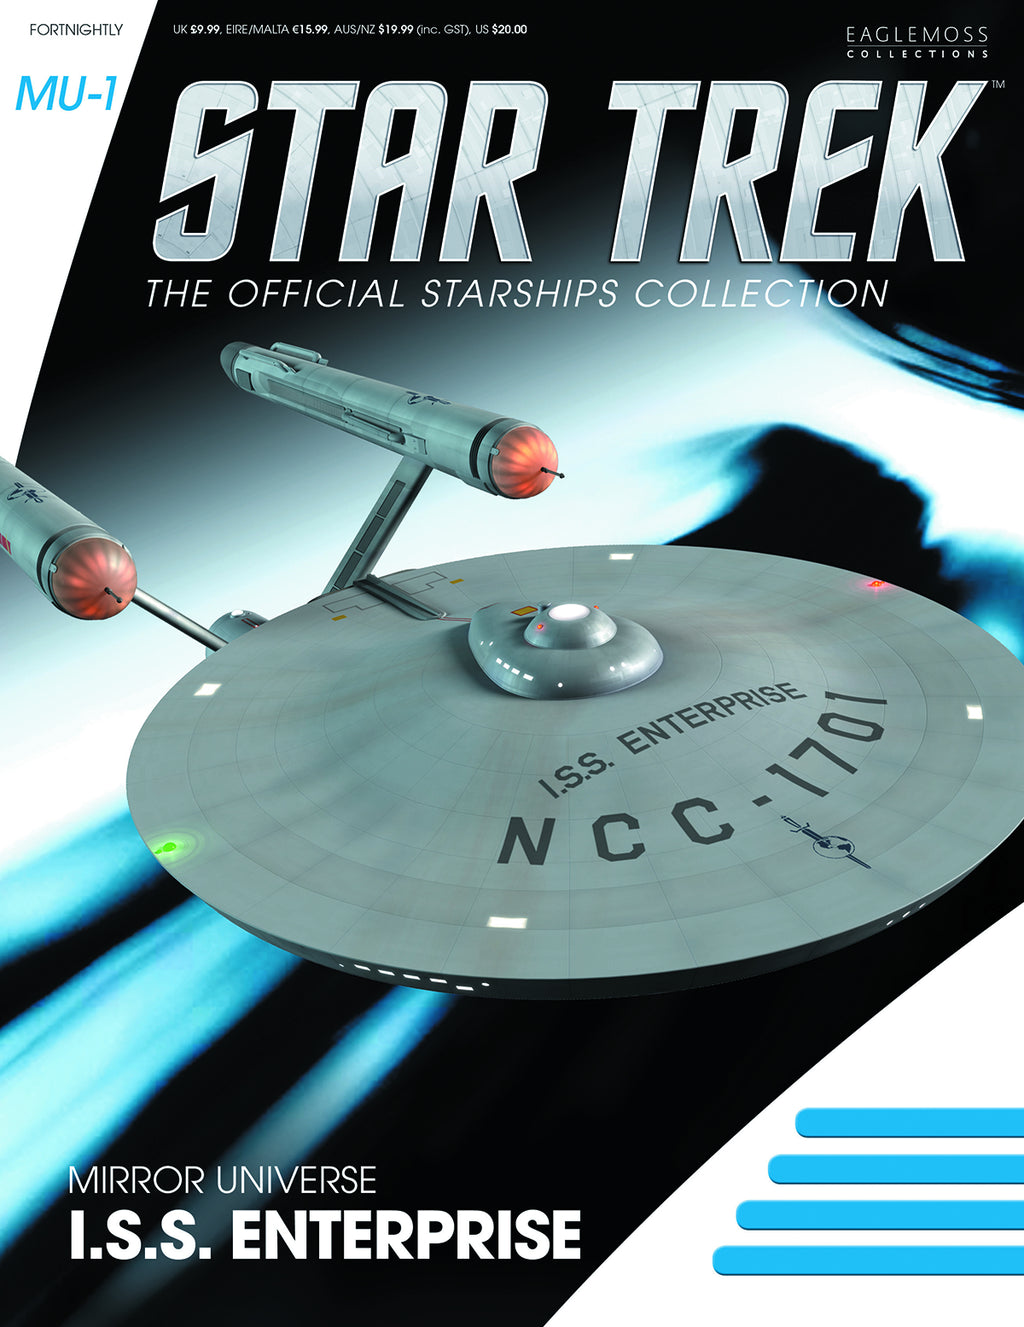 Star Trek Mirror Universe ISS Enterprise NCC-1701 with Magazine